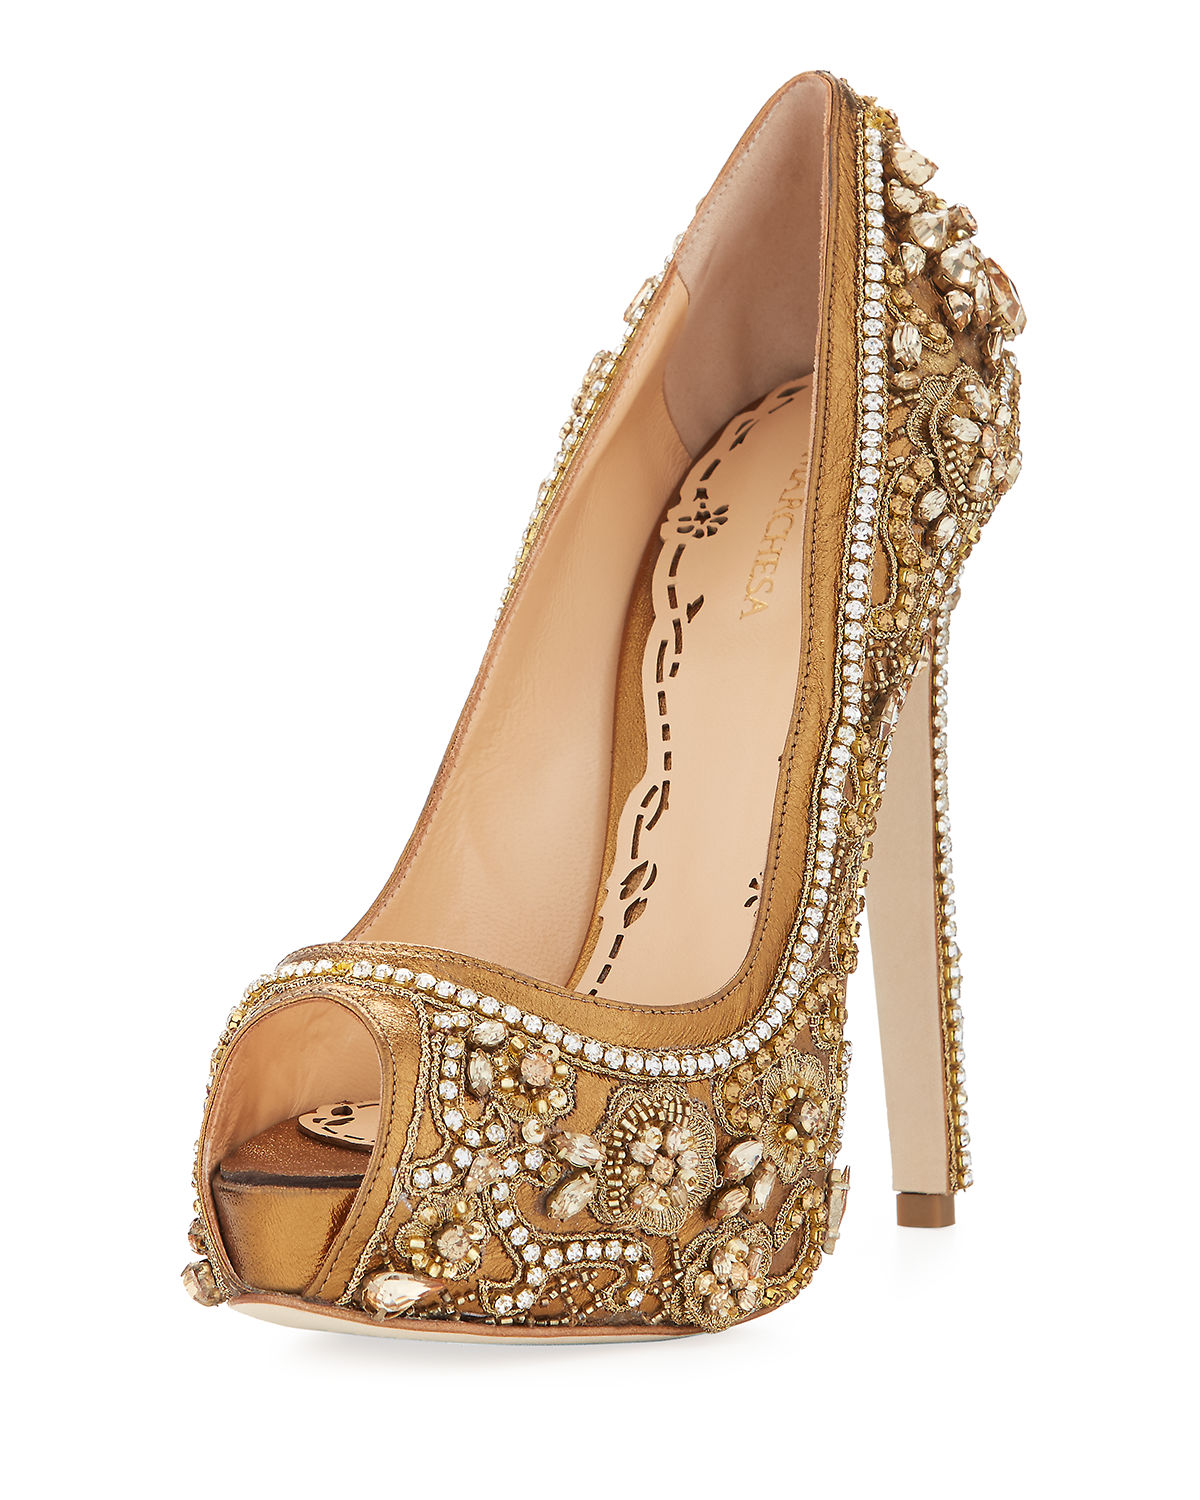 74c4ab0be9 Marchesa Rose Jeweled Peep-Toe Platform Pump Marchesa Rose Jeweled Peep-Toe  Platform Pump Hermes green Vintage Bamboo Birkin Courchevel Satchel Bag